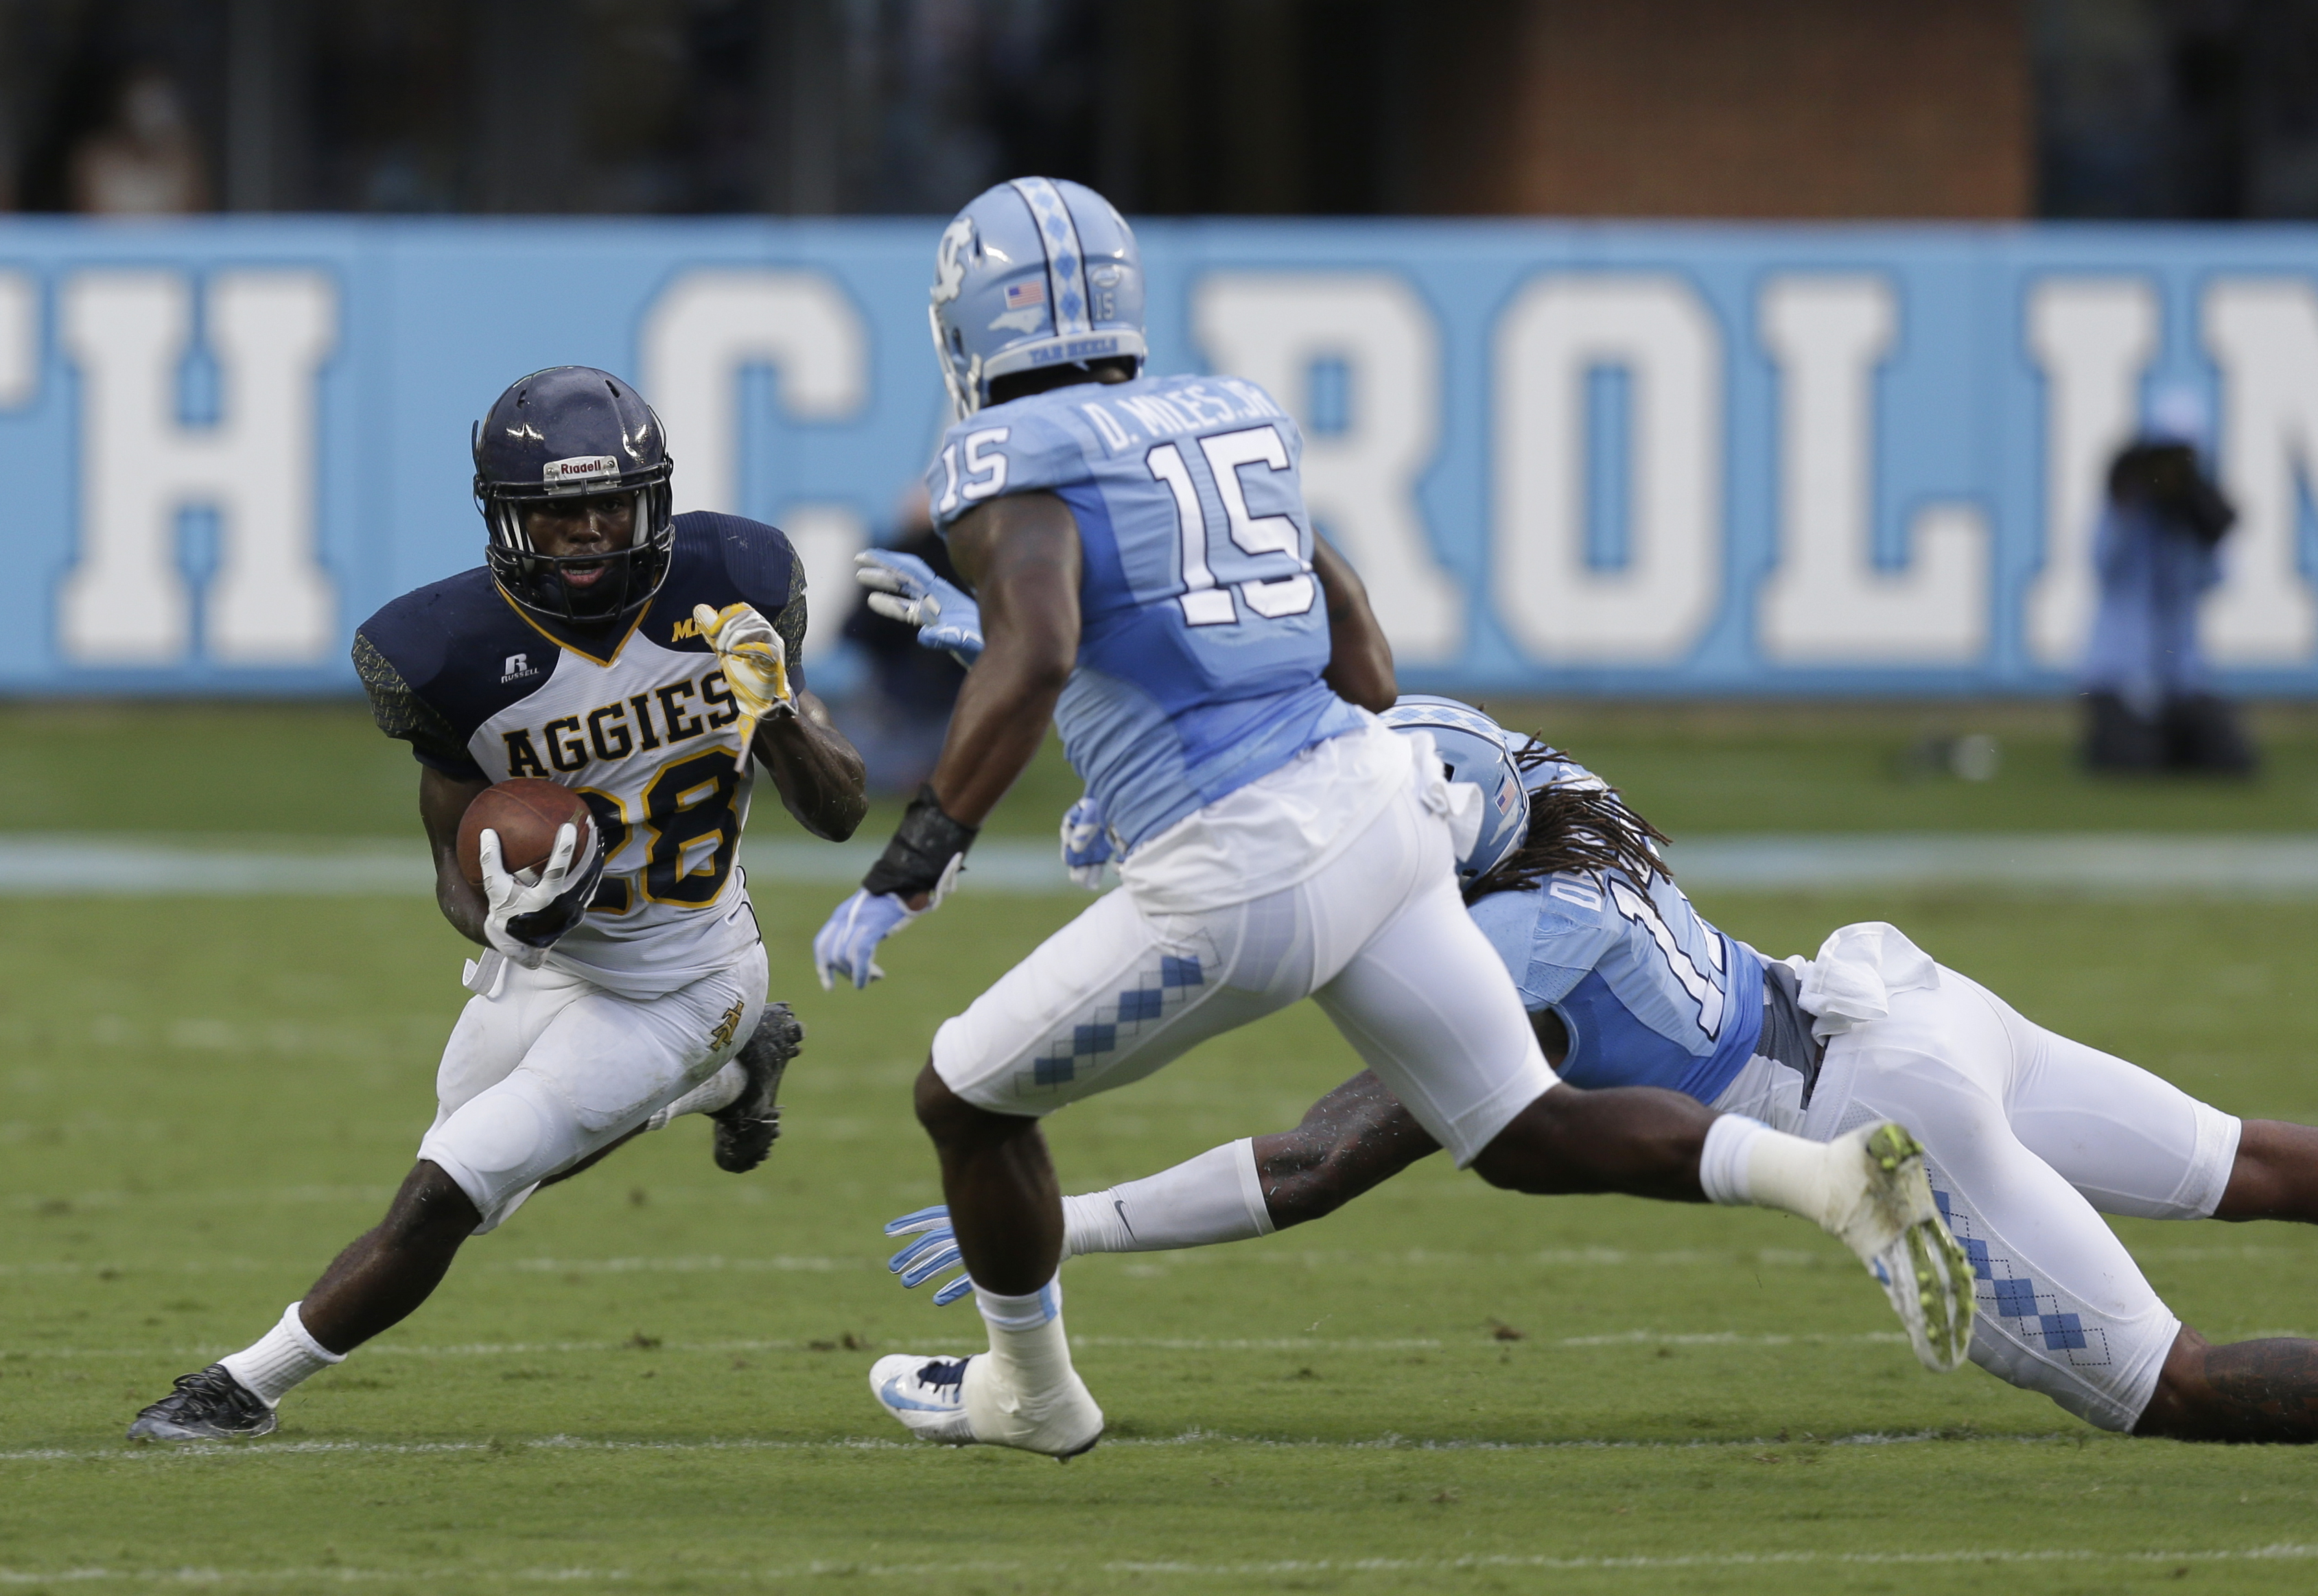 North Carolina's Dajaun Drennon (17) and Donnie Miles (15) move in to tackle North Carolina A&T's Tarik Cohen (28) during the first half of an NCAA college football game in Chapel Hill, N.C., Saturday, Sept. 12, 2015. (AP Photo/Gerry Broome)